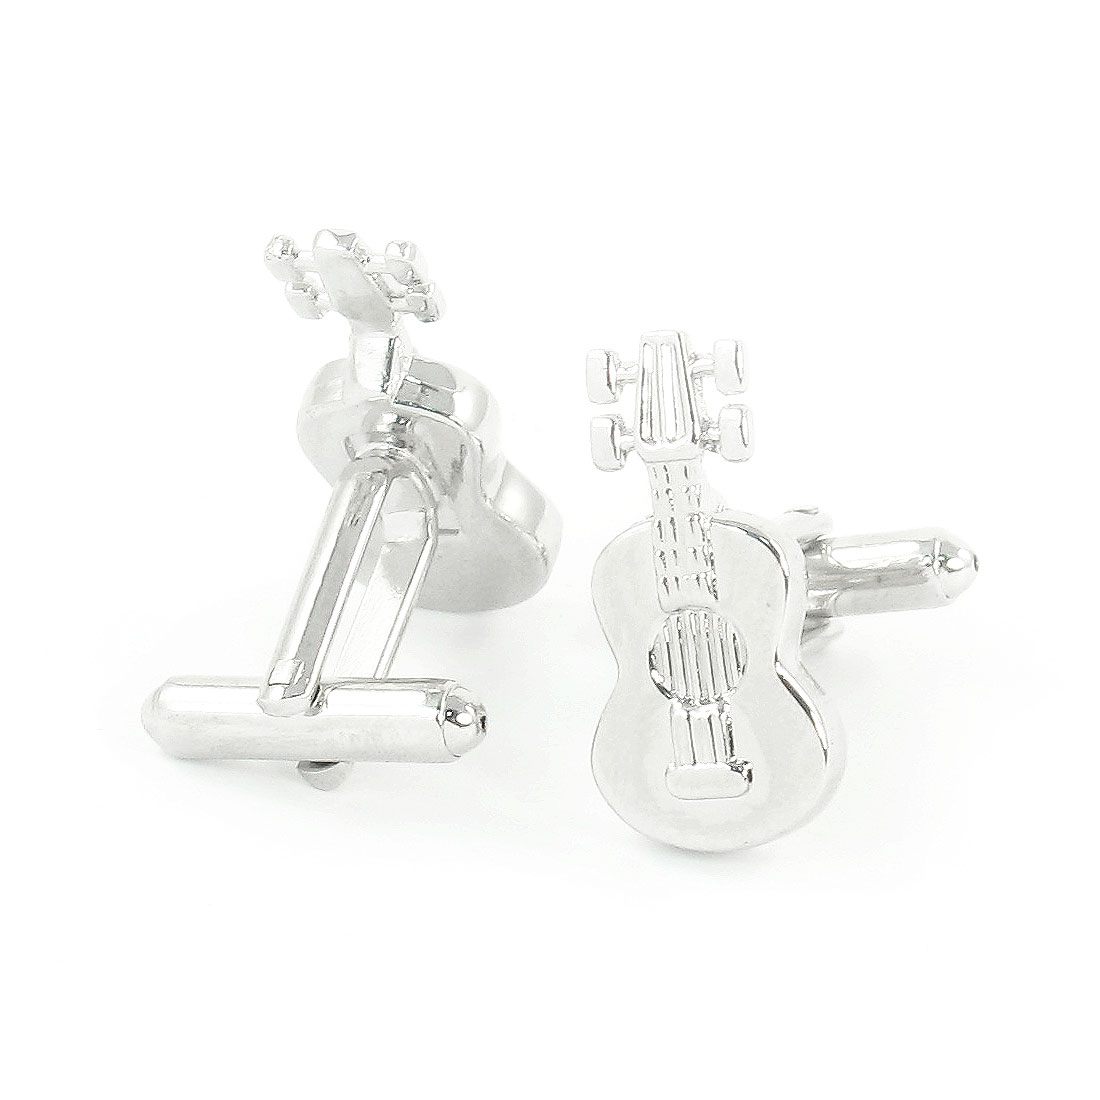 Pair Gift Wedding Guitar Shaped Cuff Links for Men Groom